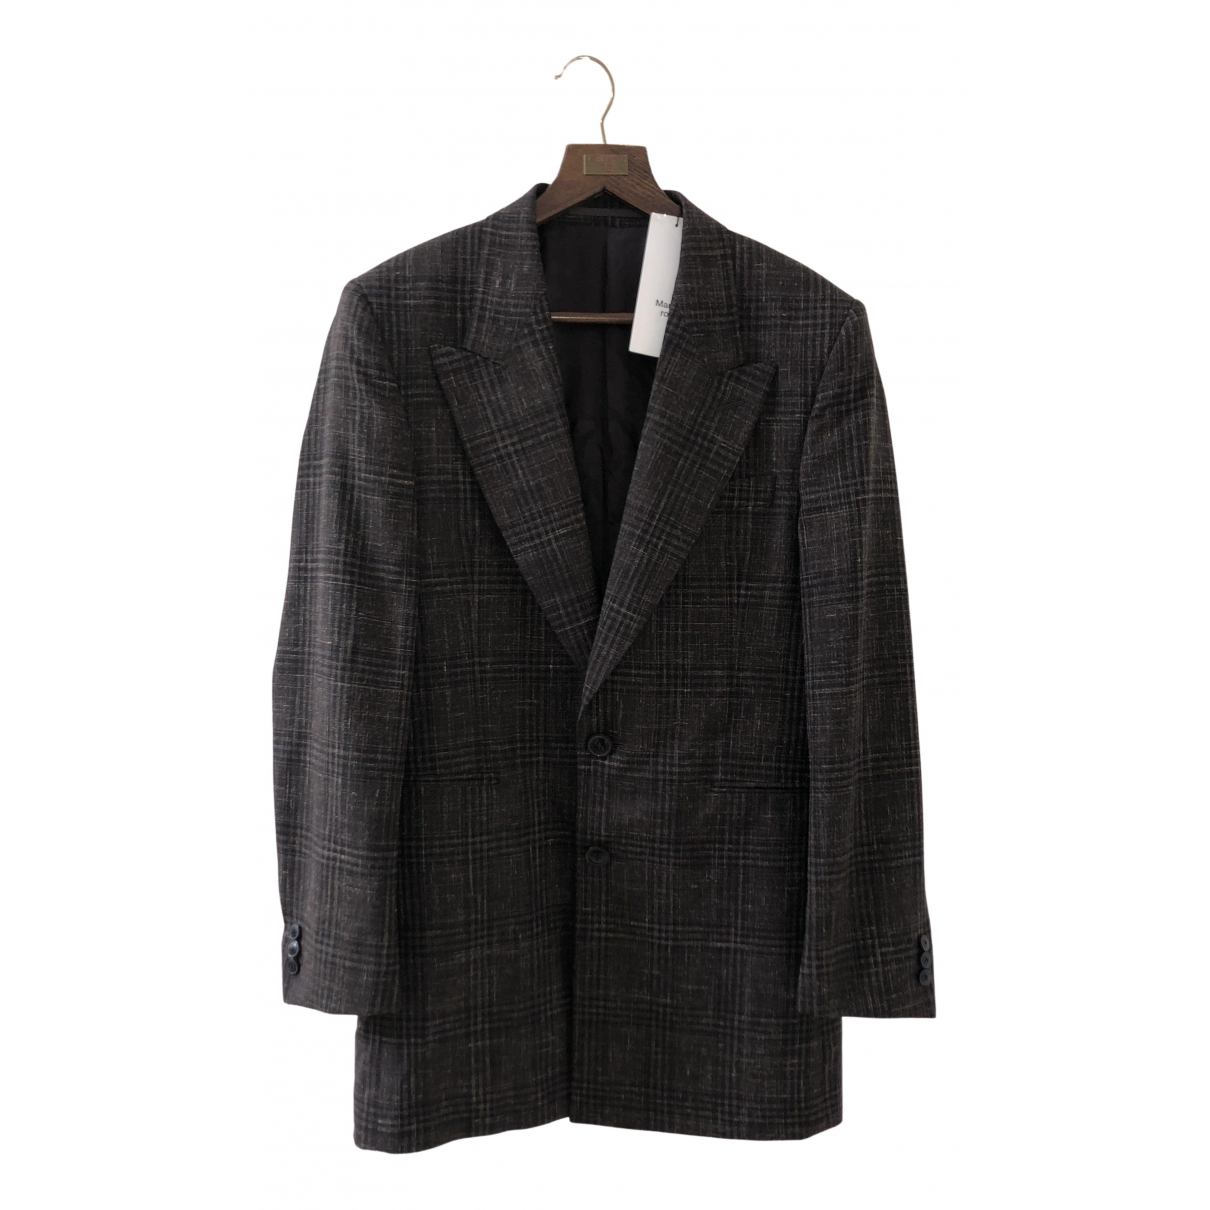 Martine Rose \N Brown Wool jacket  for Men S International